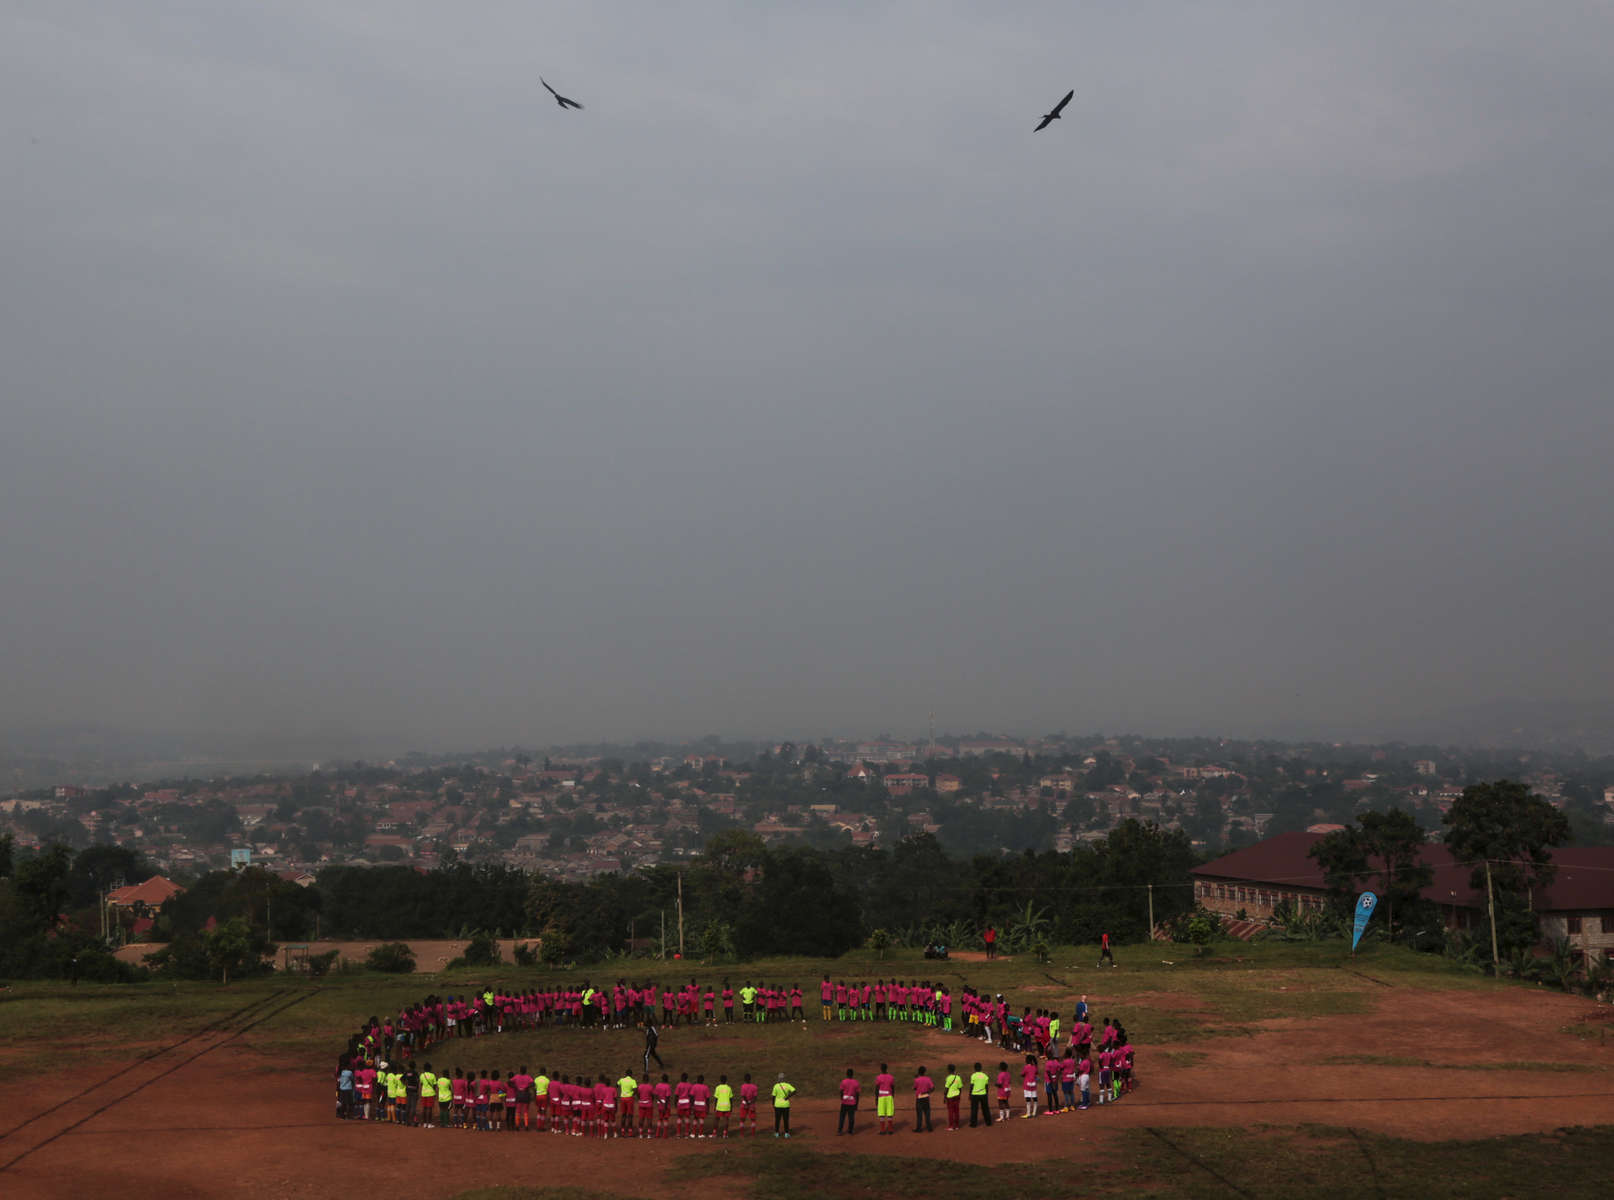 Participants make a big circle at the beginning of {quote}Women take the Lead{quote} festival, a soccer event for Congolese refugee youth in Kampala, Uganda on December 10, 2018.